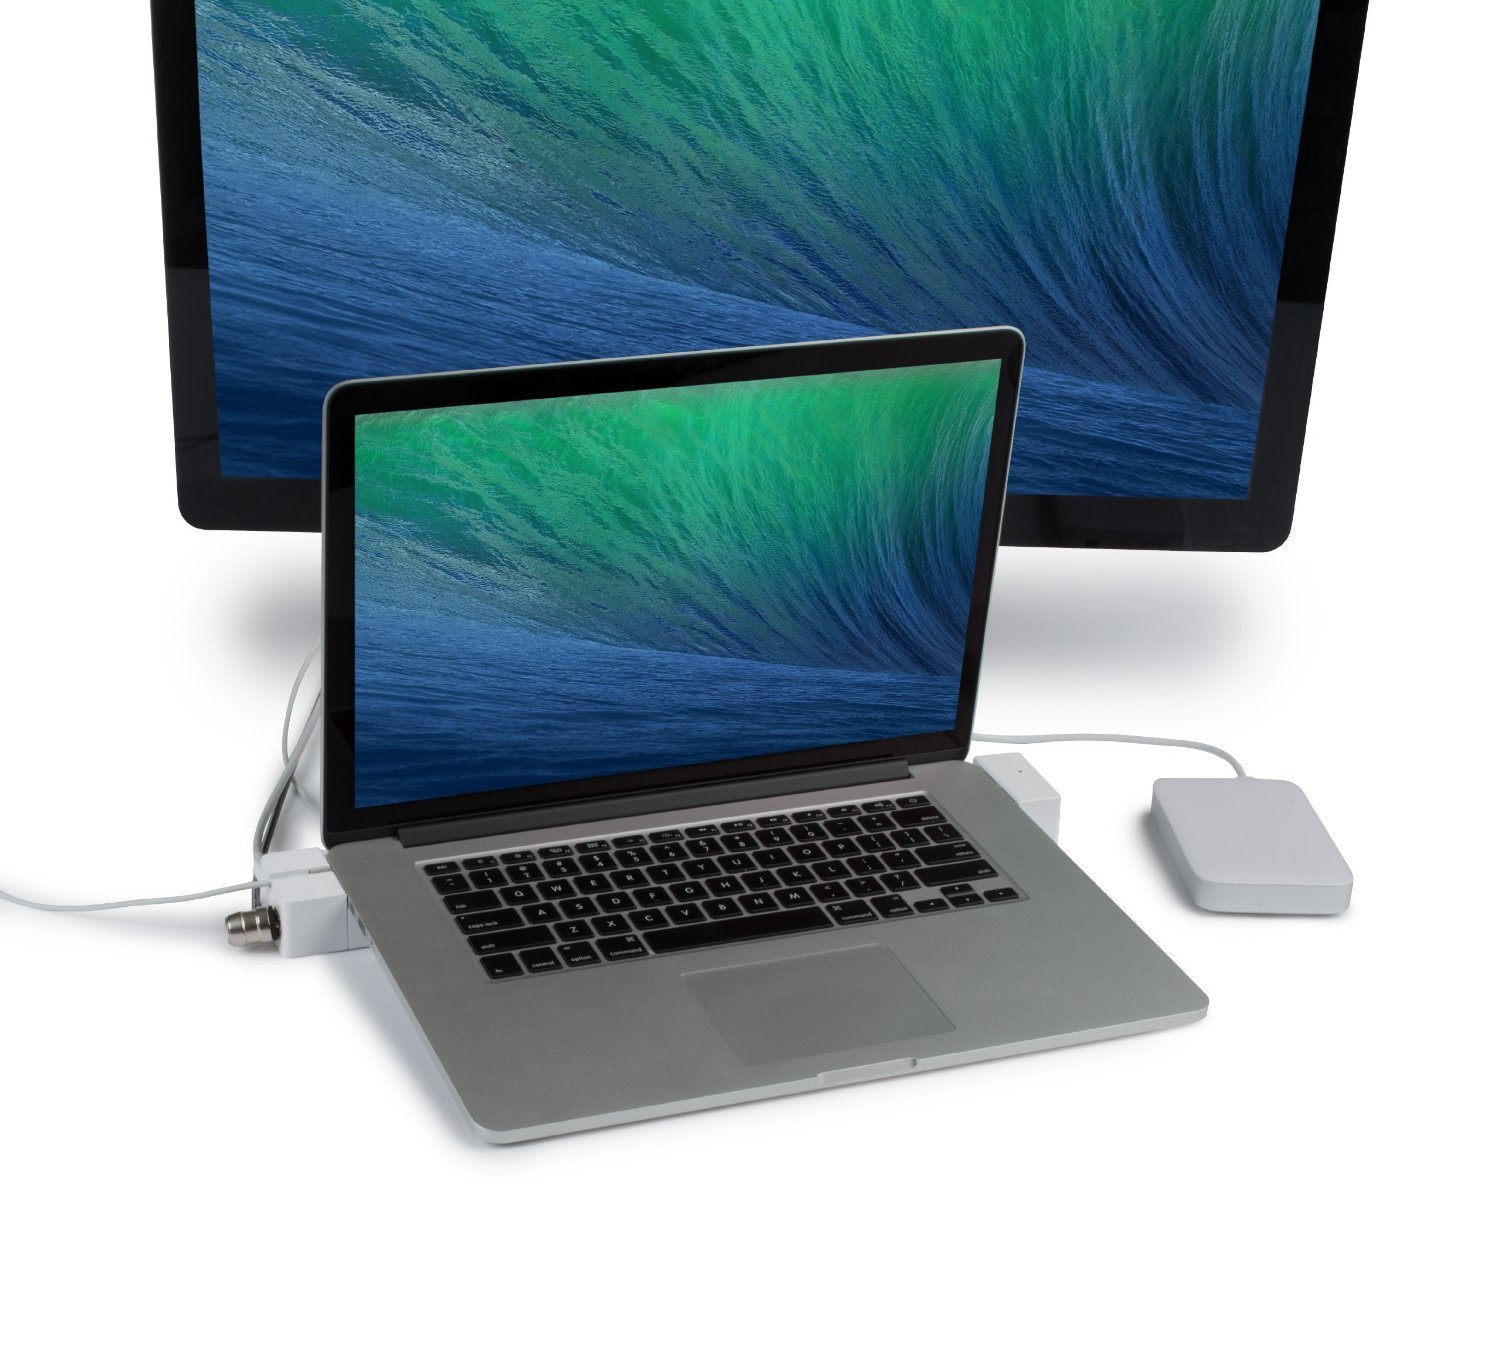 LandingZone DOCK 13'' Secure Docking Station for MacBook Pro with Retina Display Model A1425 and A1502 Released 2012 to 2015